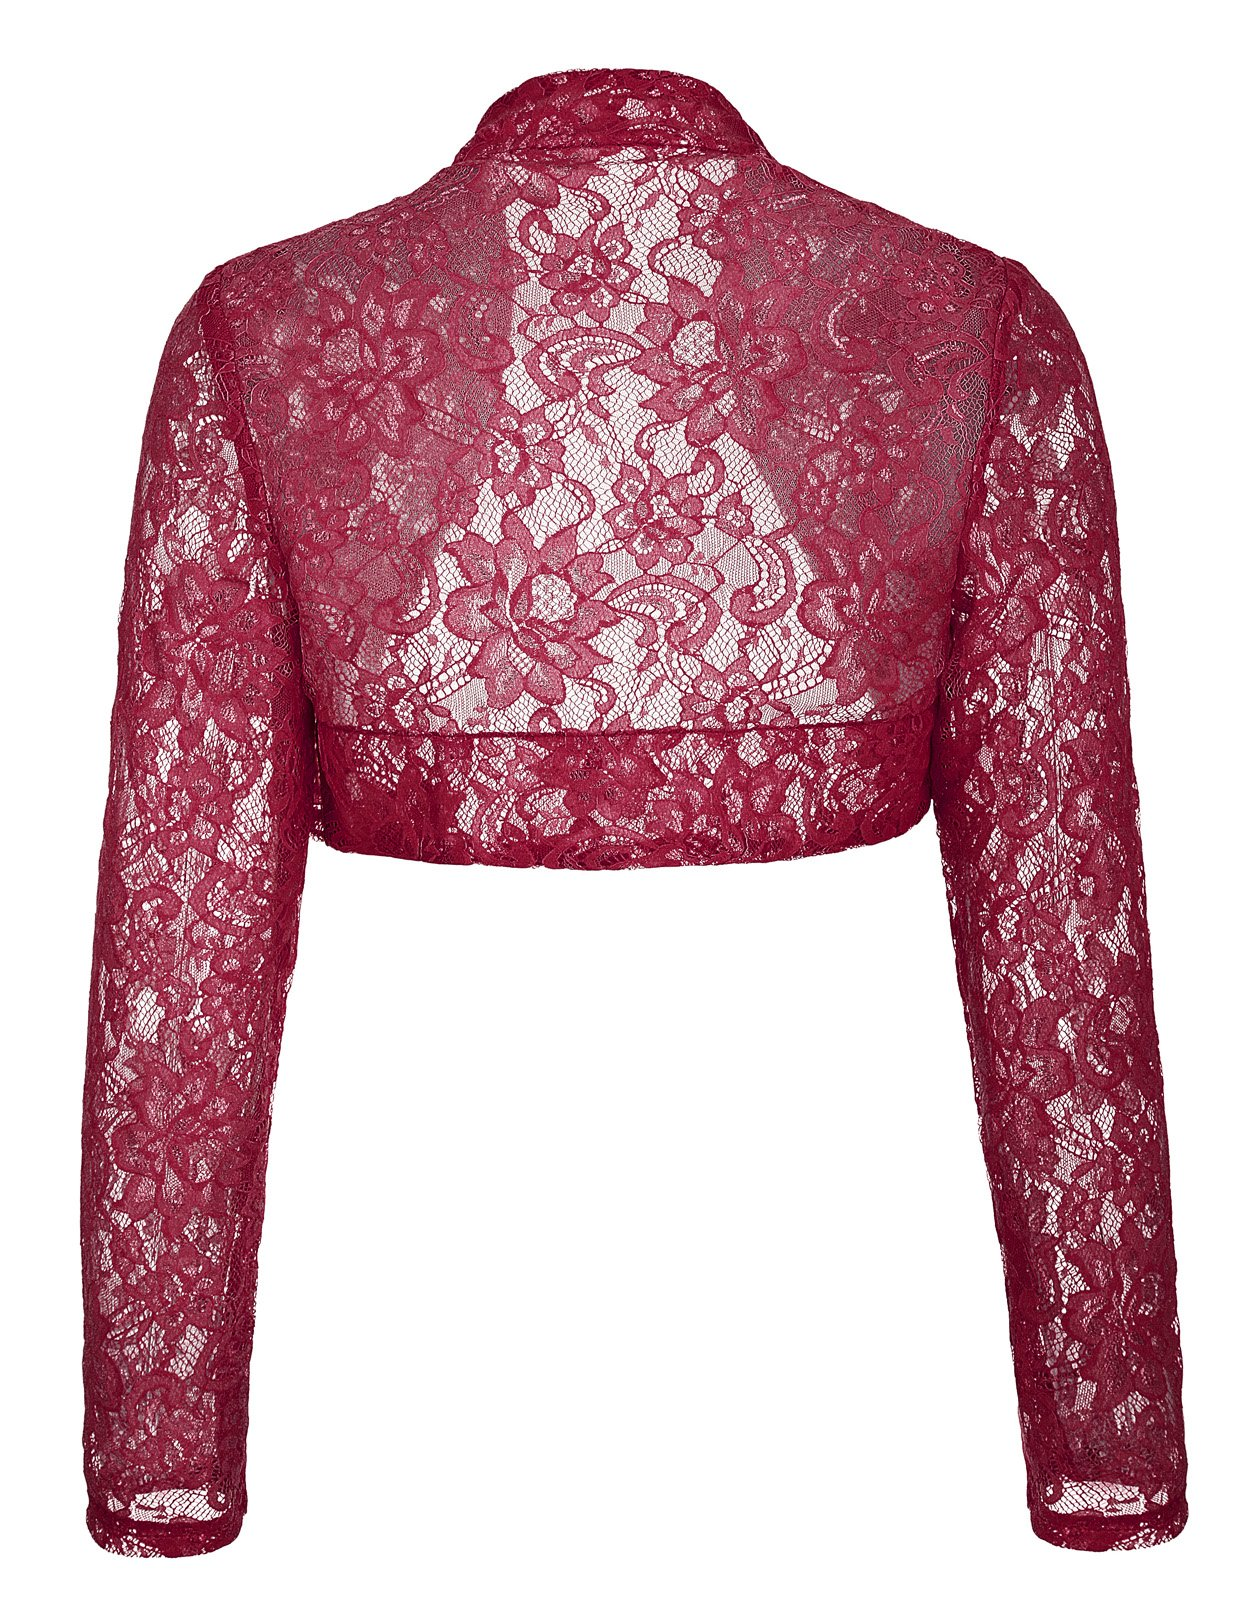 JS Fashion Vintage Dress Woman Long Sleeve Shrug Cardigan Crochet Lace Tops (L,Wine BP49) by JS Fashion Vintage Dress (Image #2)